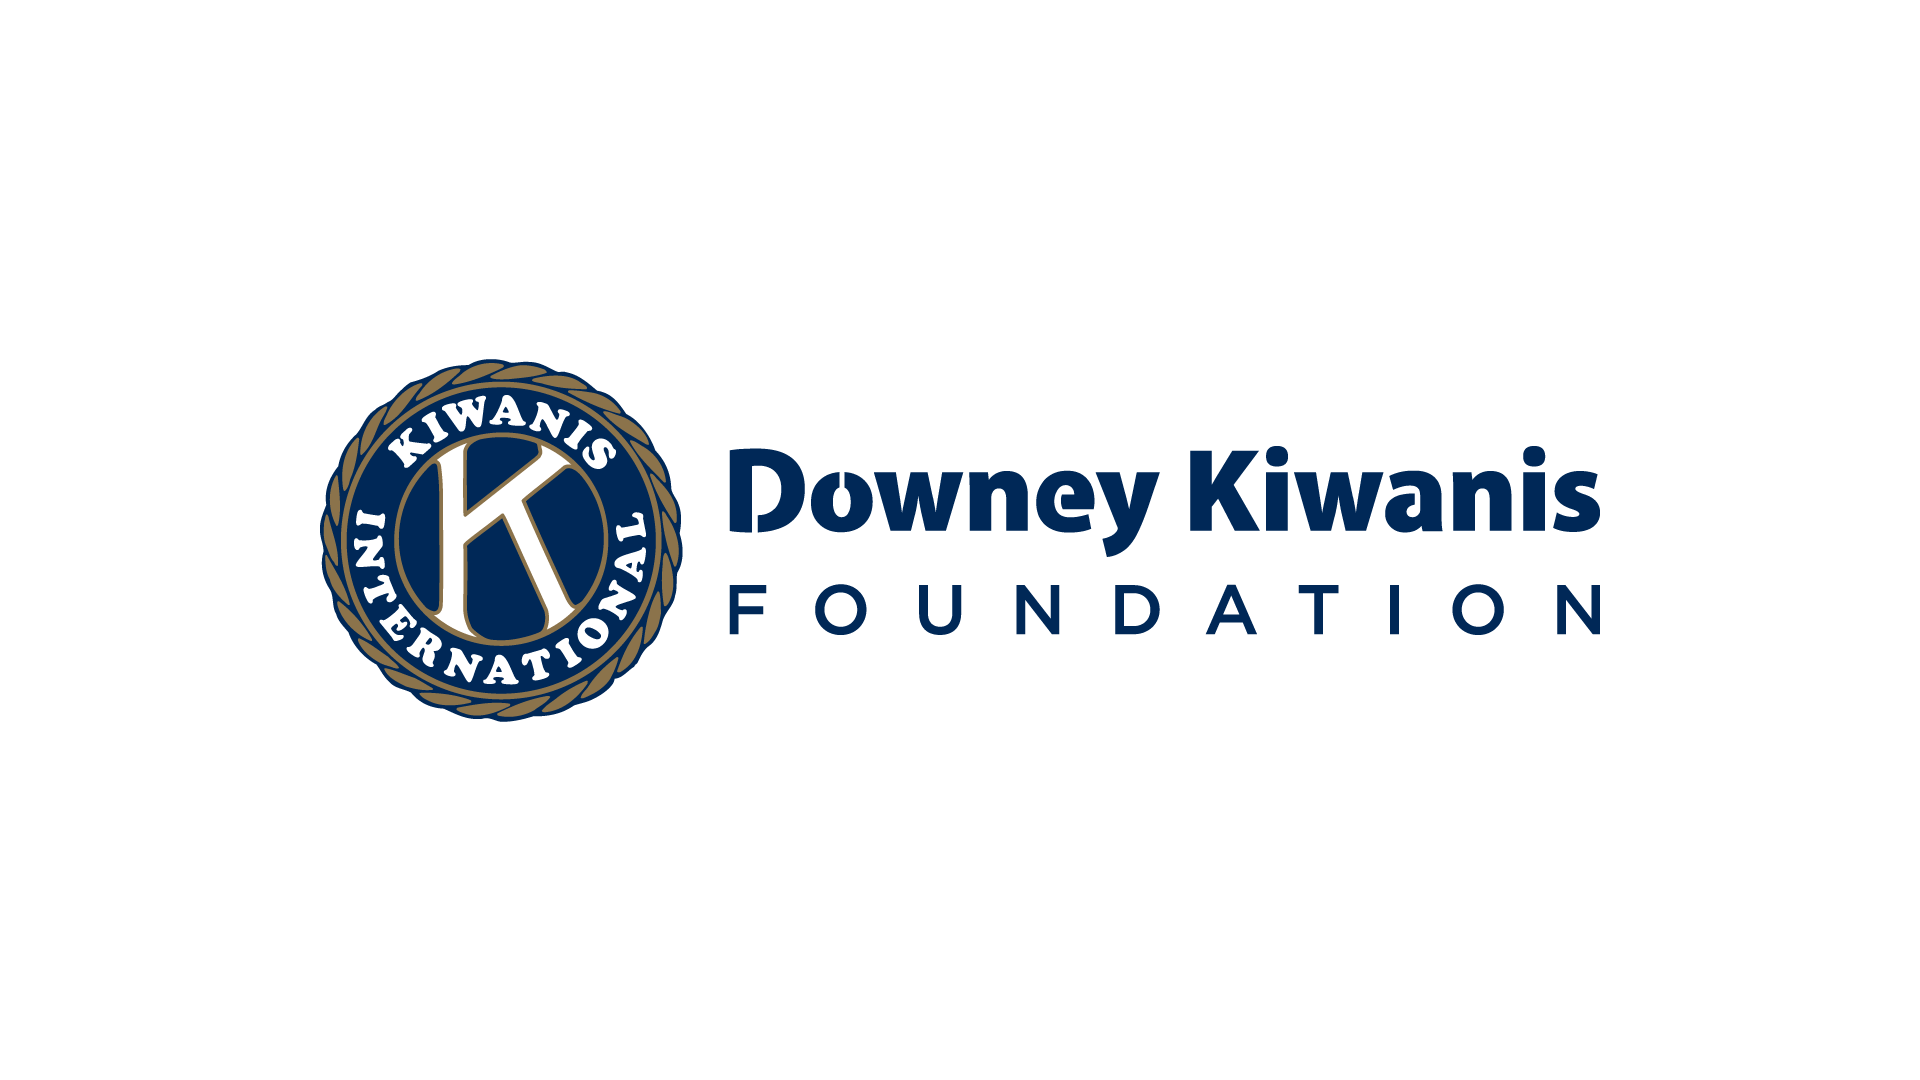 stay-kiwanis-downey.png